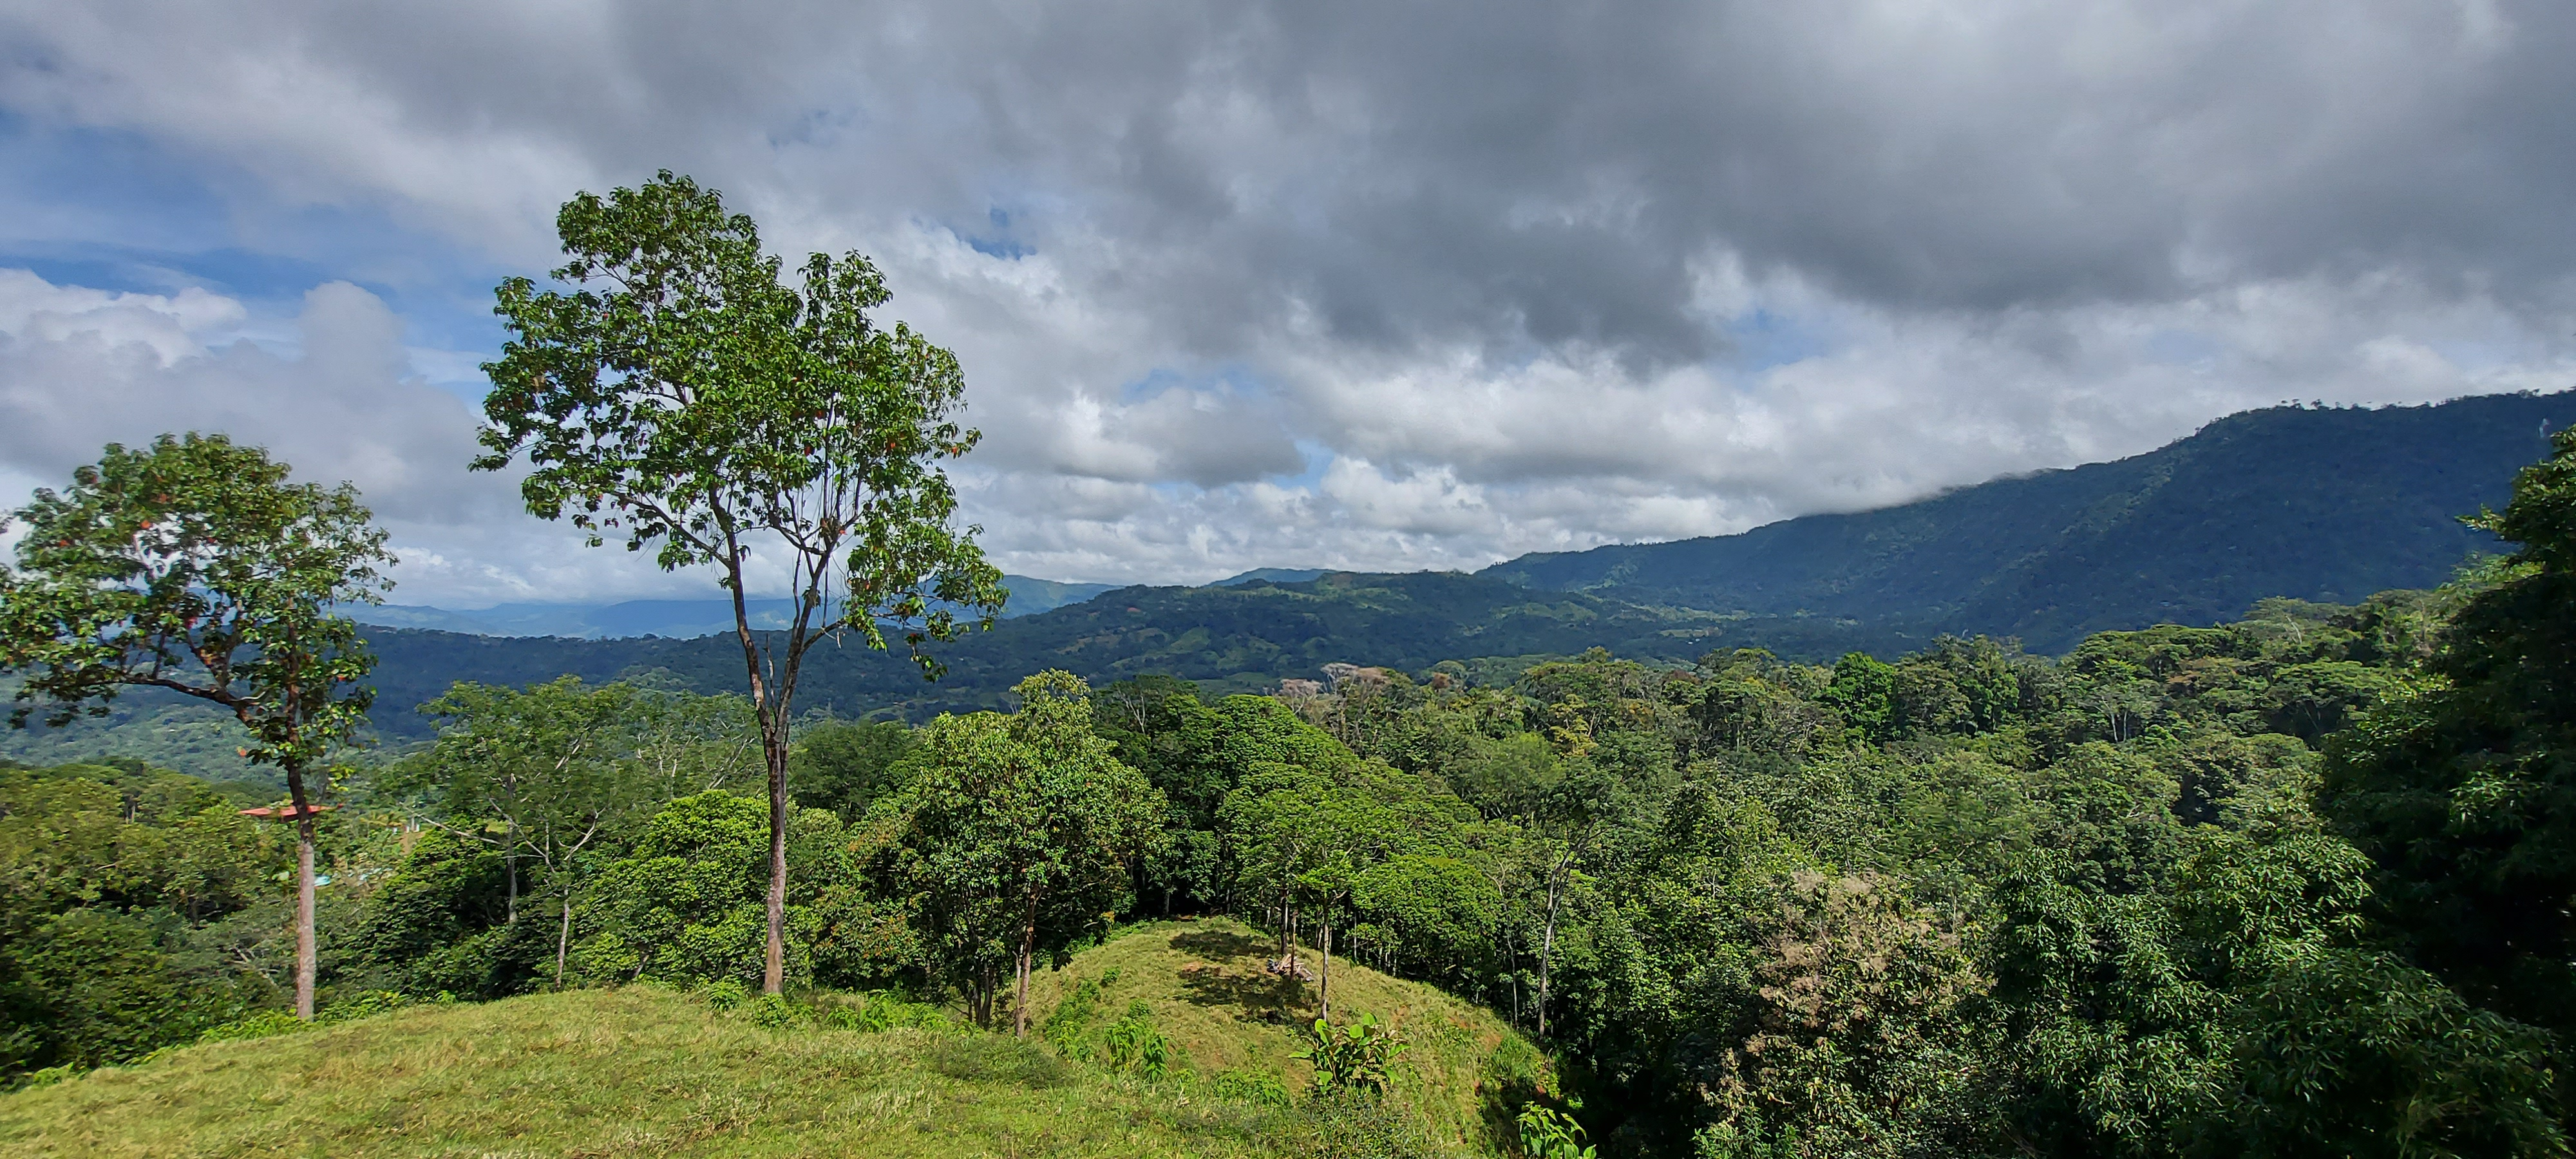 Nice property with mountain views and small river in San Salvador, Baru